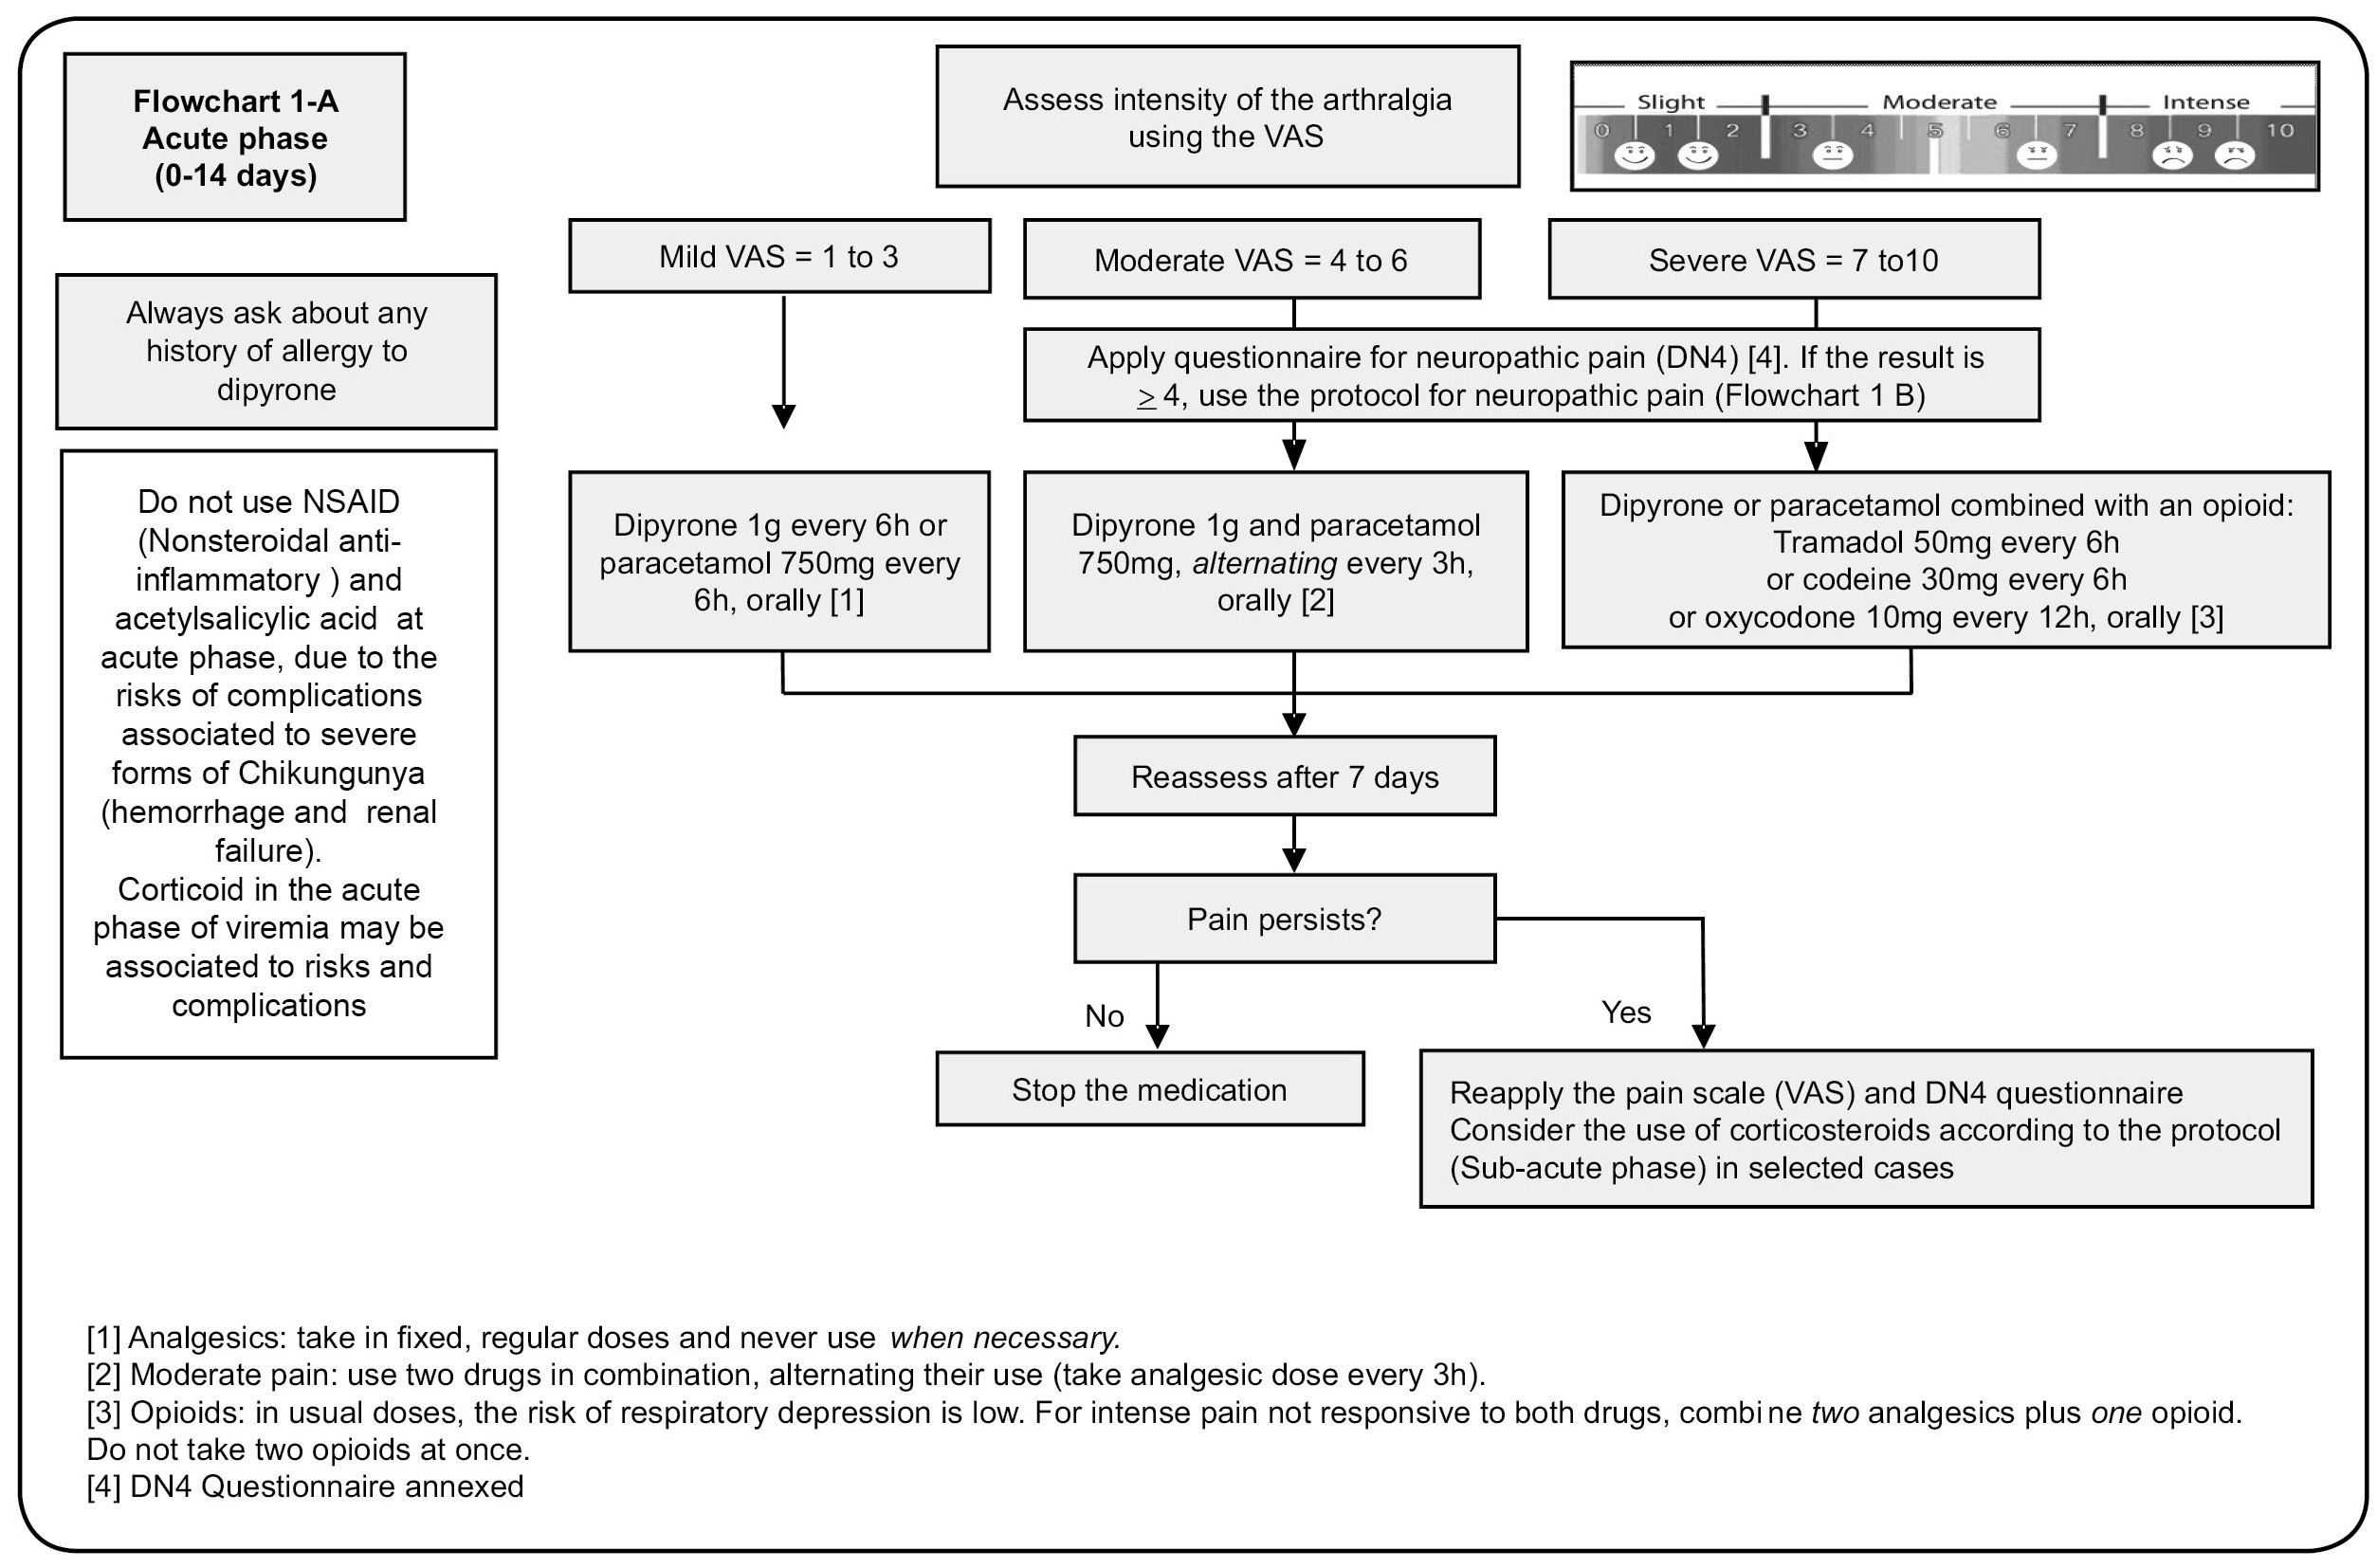 Pharmacologic management of pain in patients with Chikungunya: a guideline